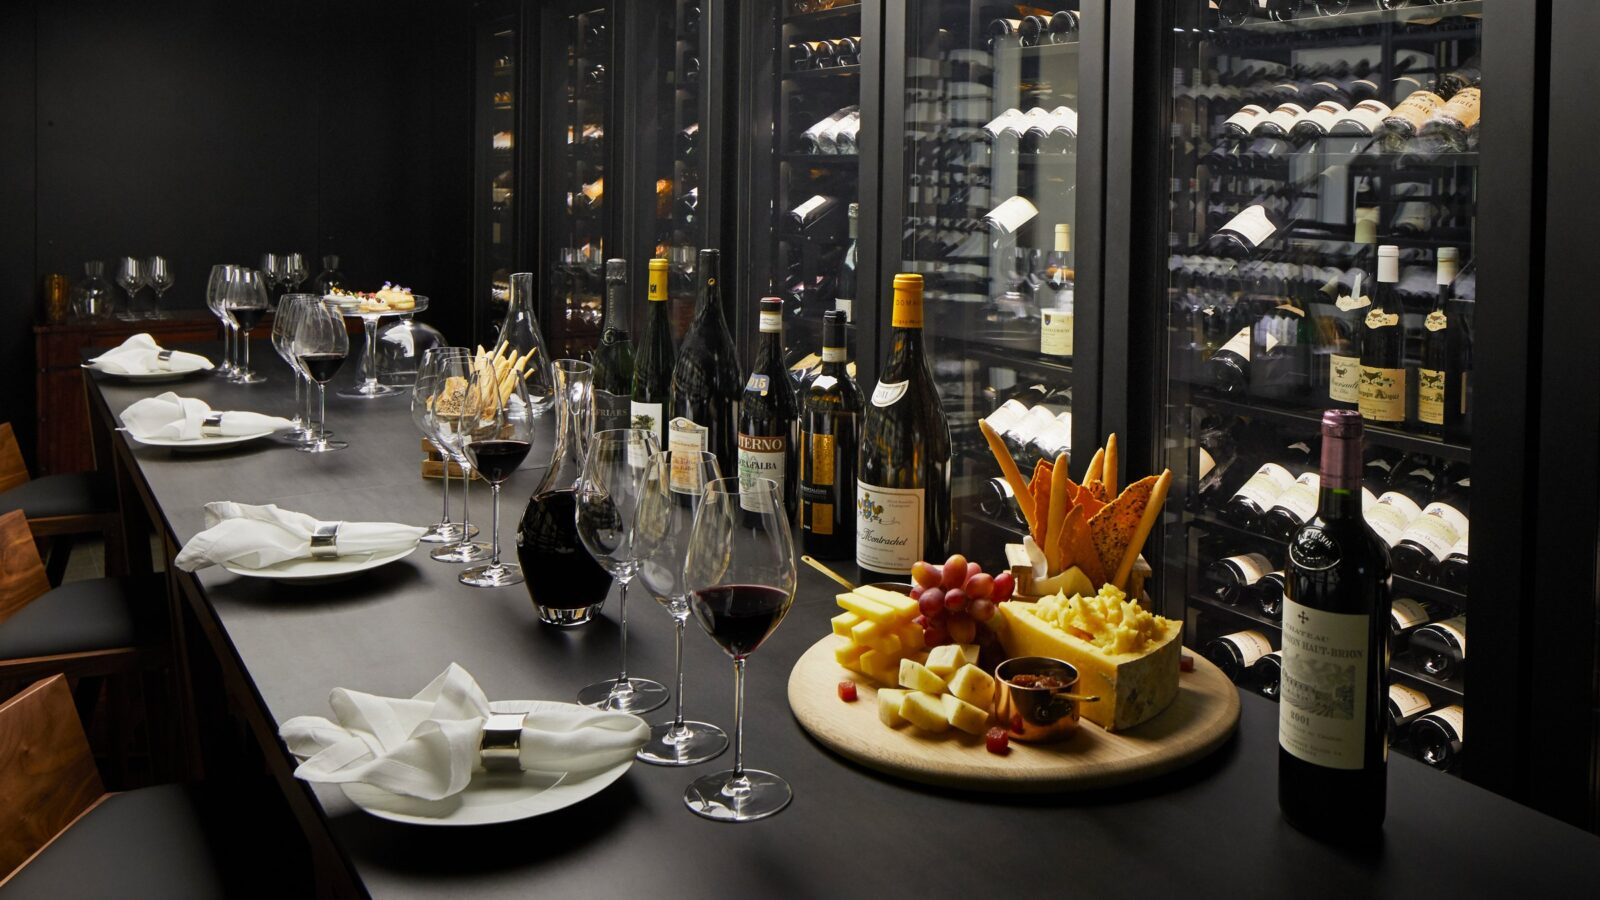 Wine and food on the bar at The Wine Vault at The Dorchester